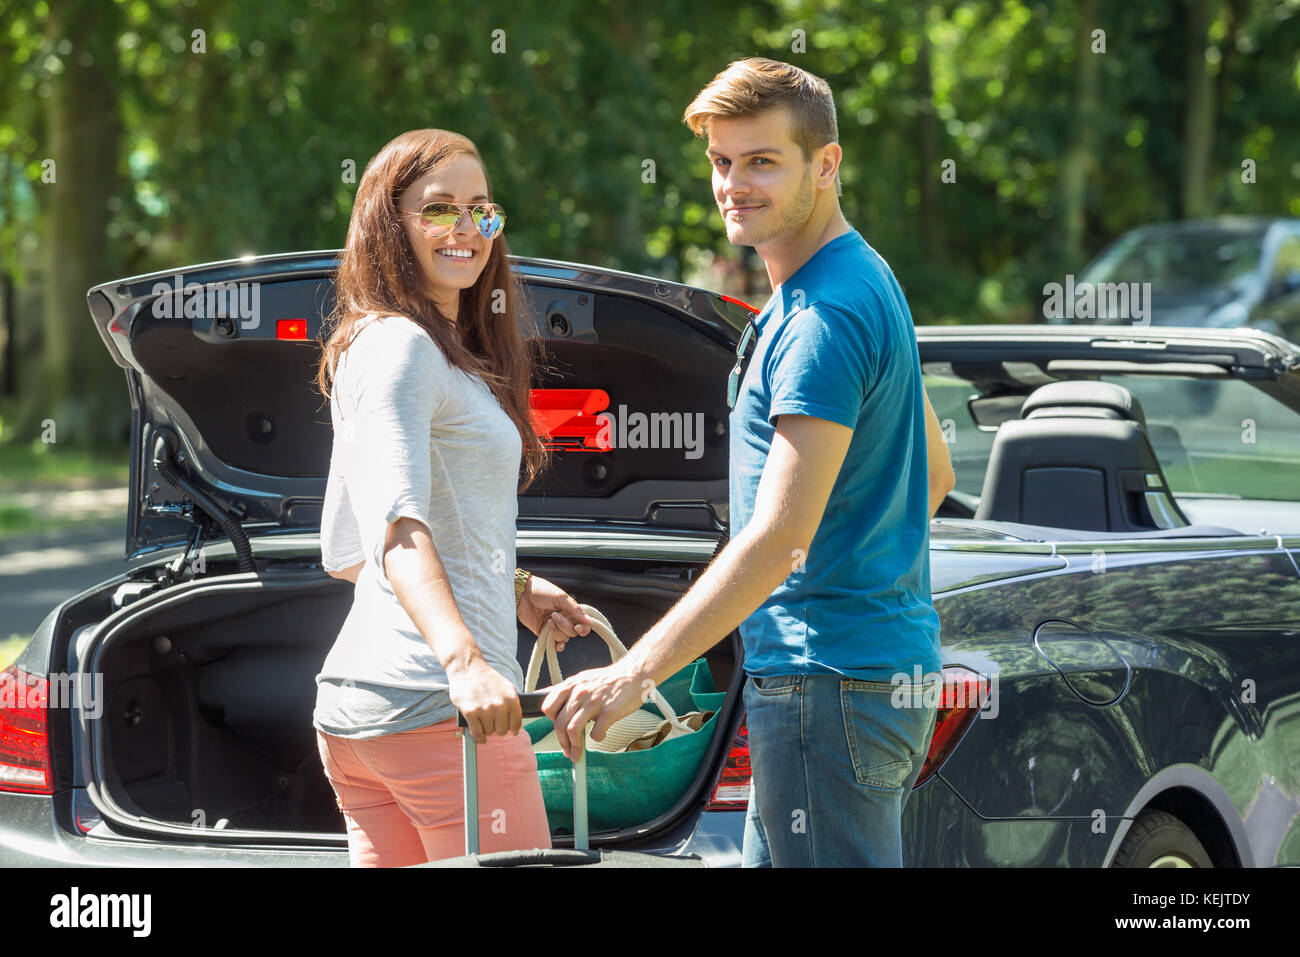 Portrait Of Young Happy Couple Putting Luggage In A Car Trunk - Stock Image